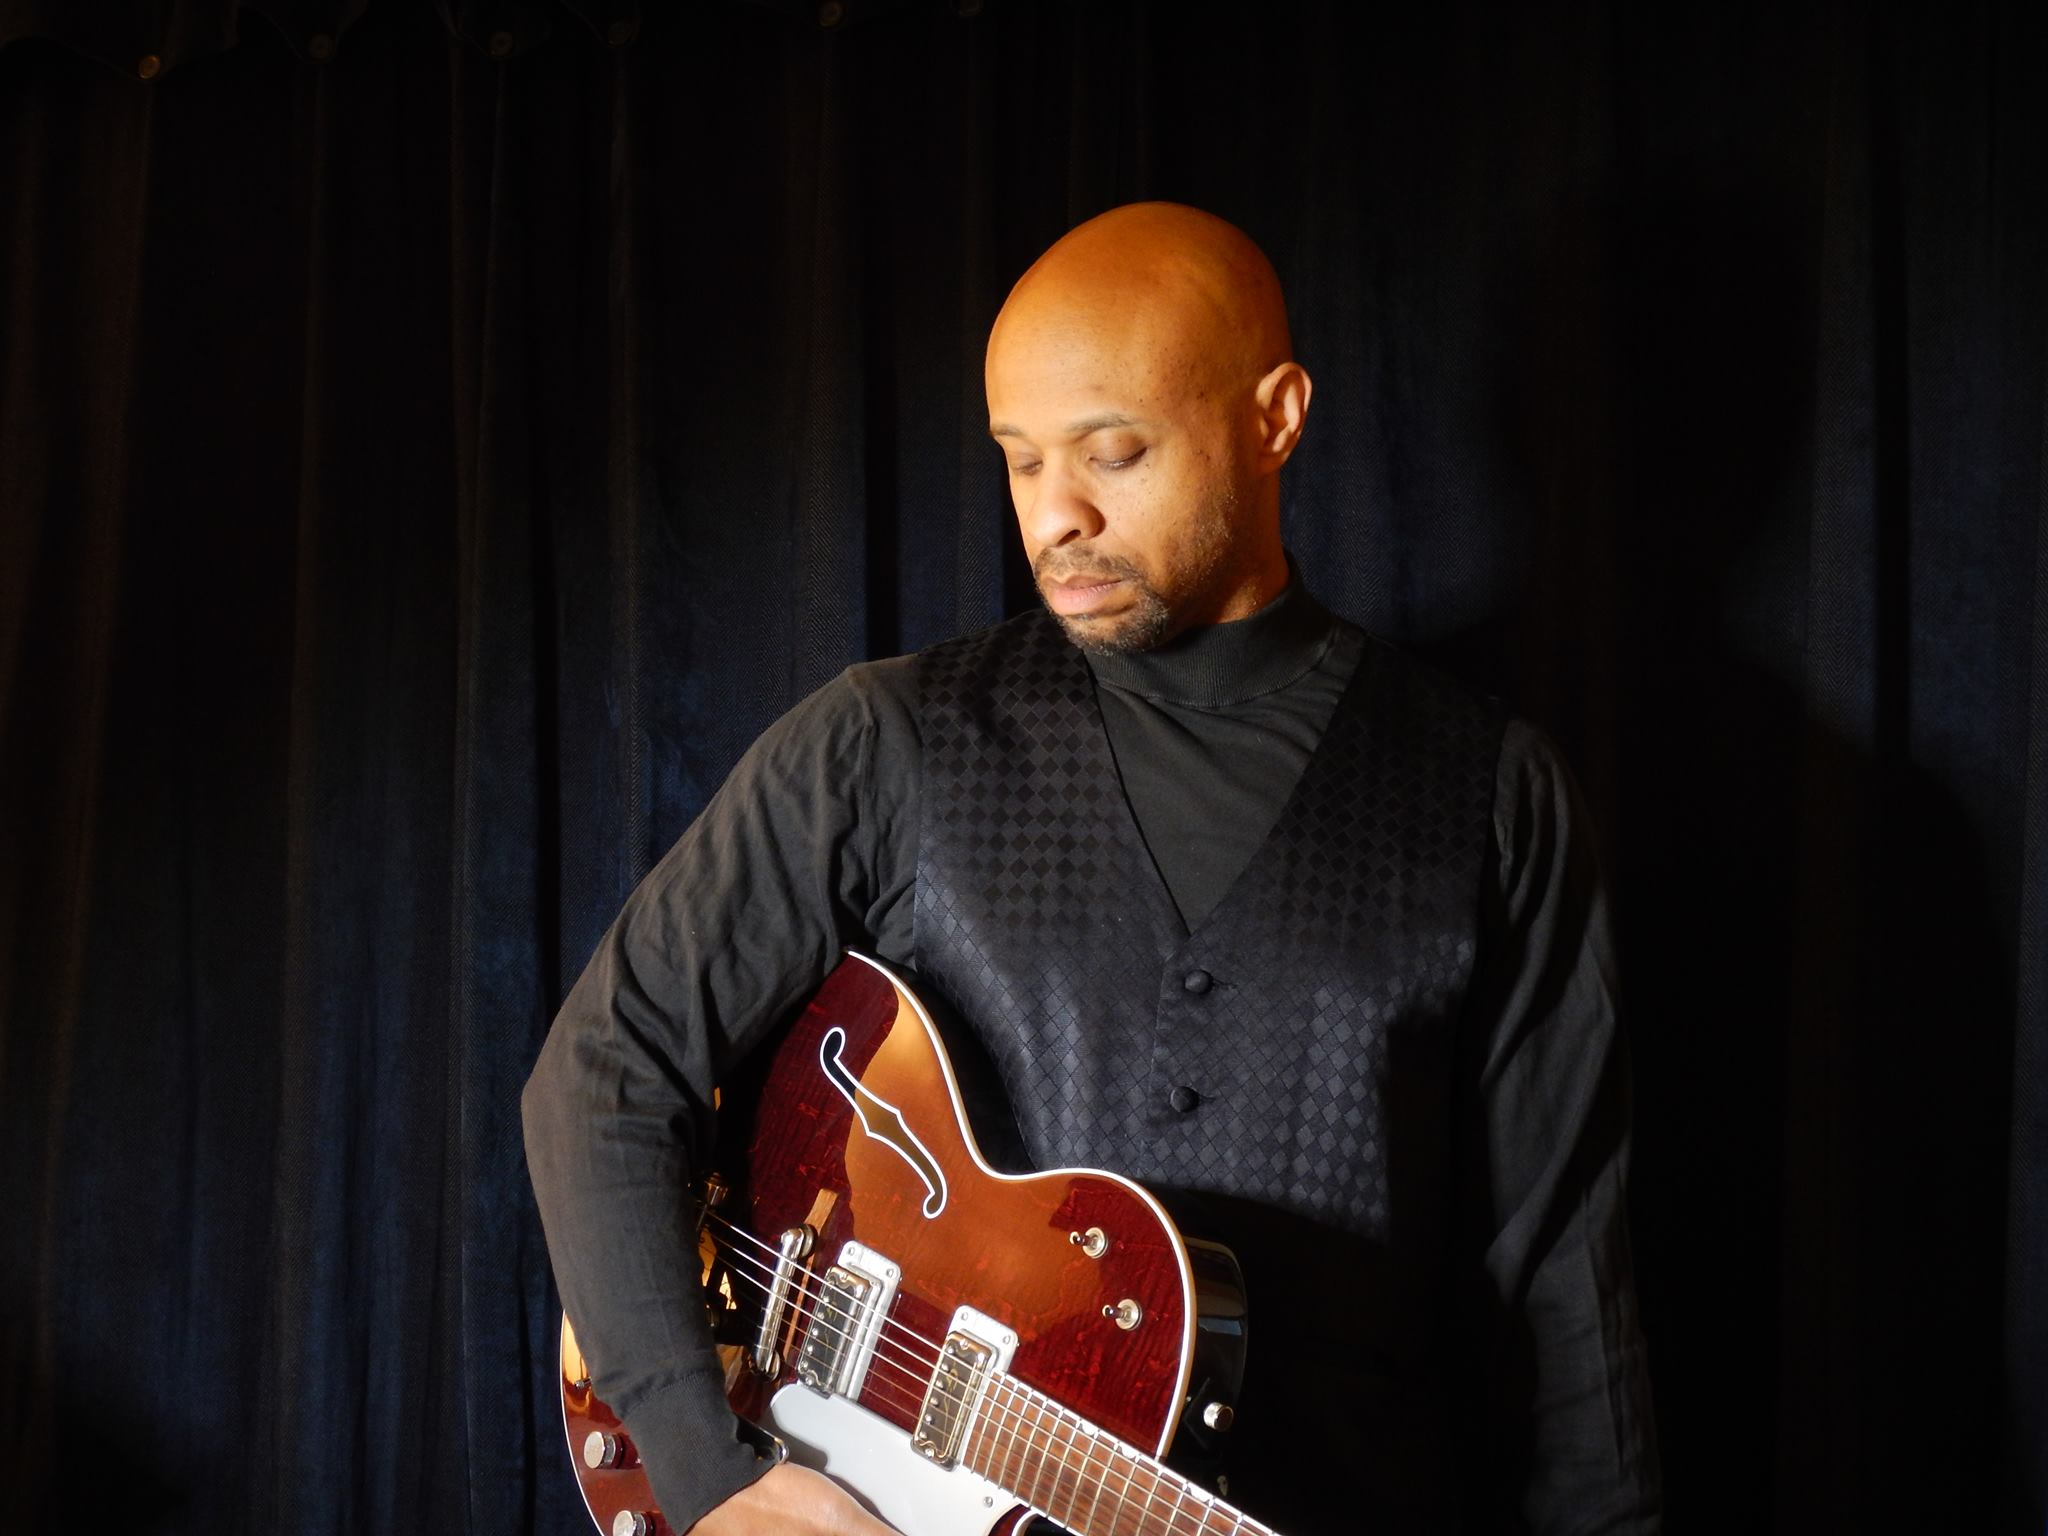 Luther Tyree - September 6thSolo smooth jazz / blues / pop guitarist